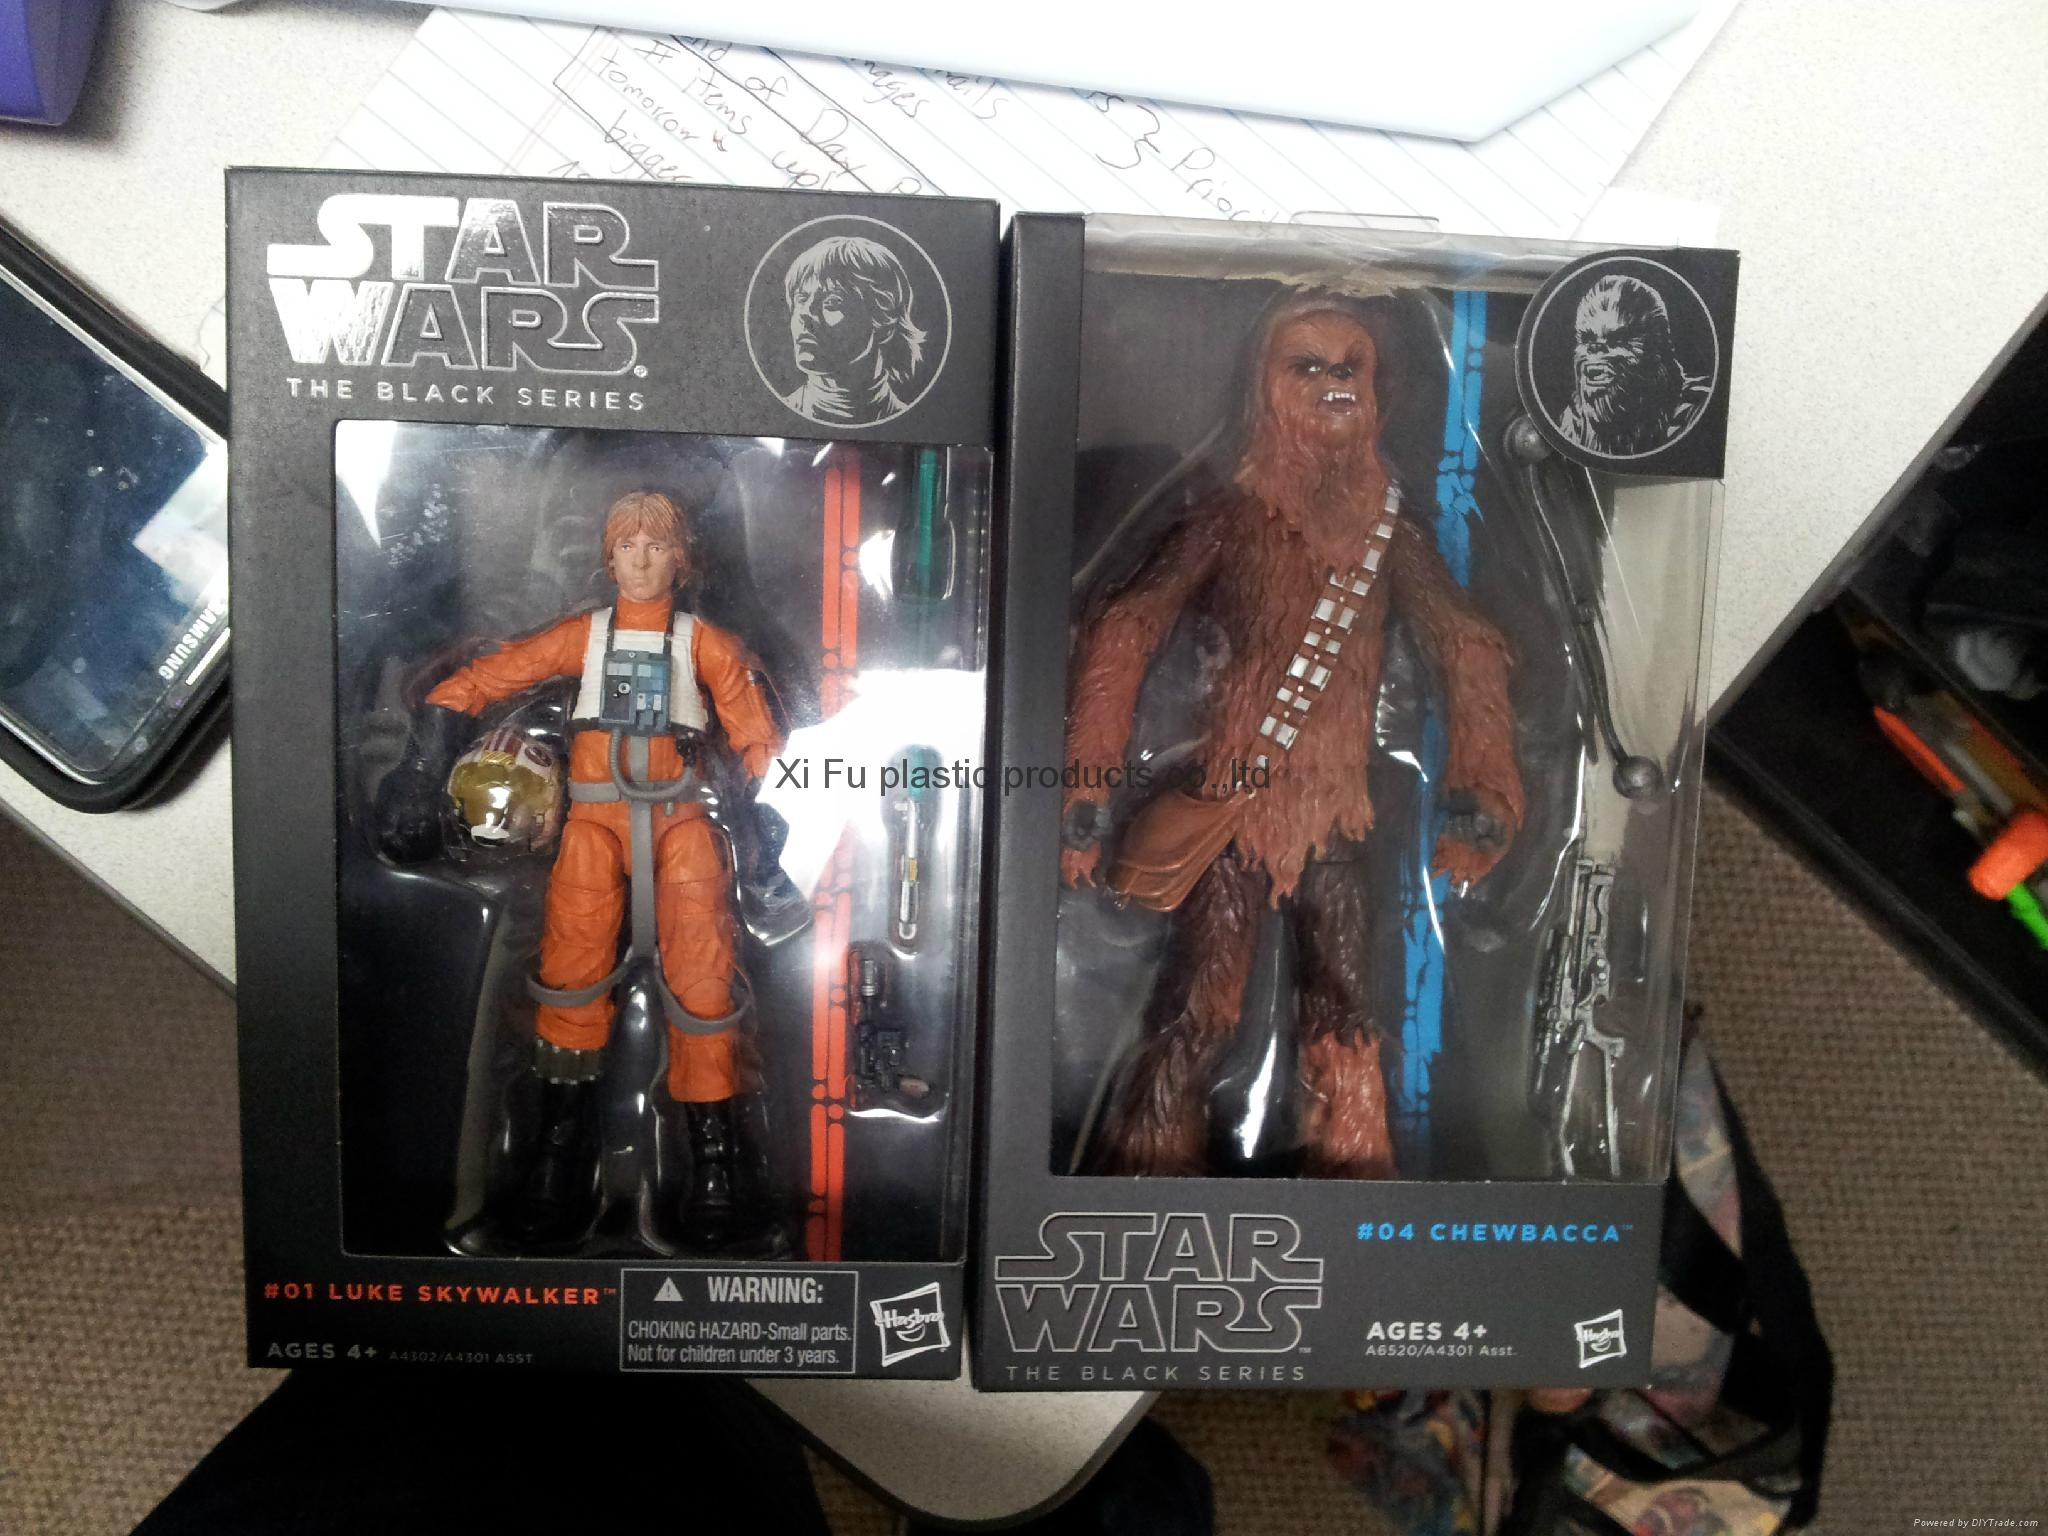 Star War collectible figure with window box packed